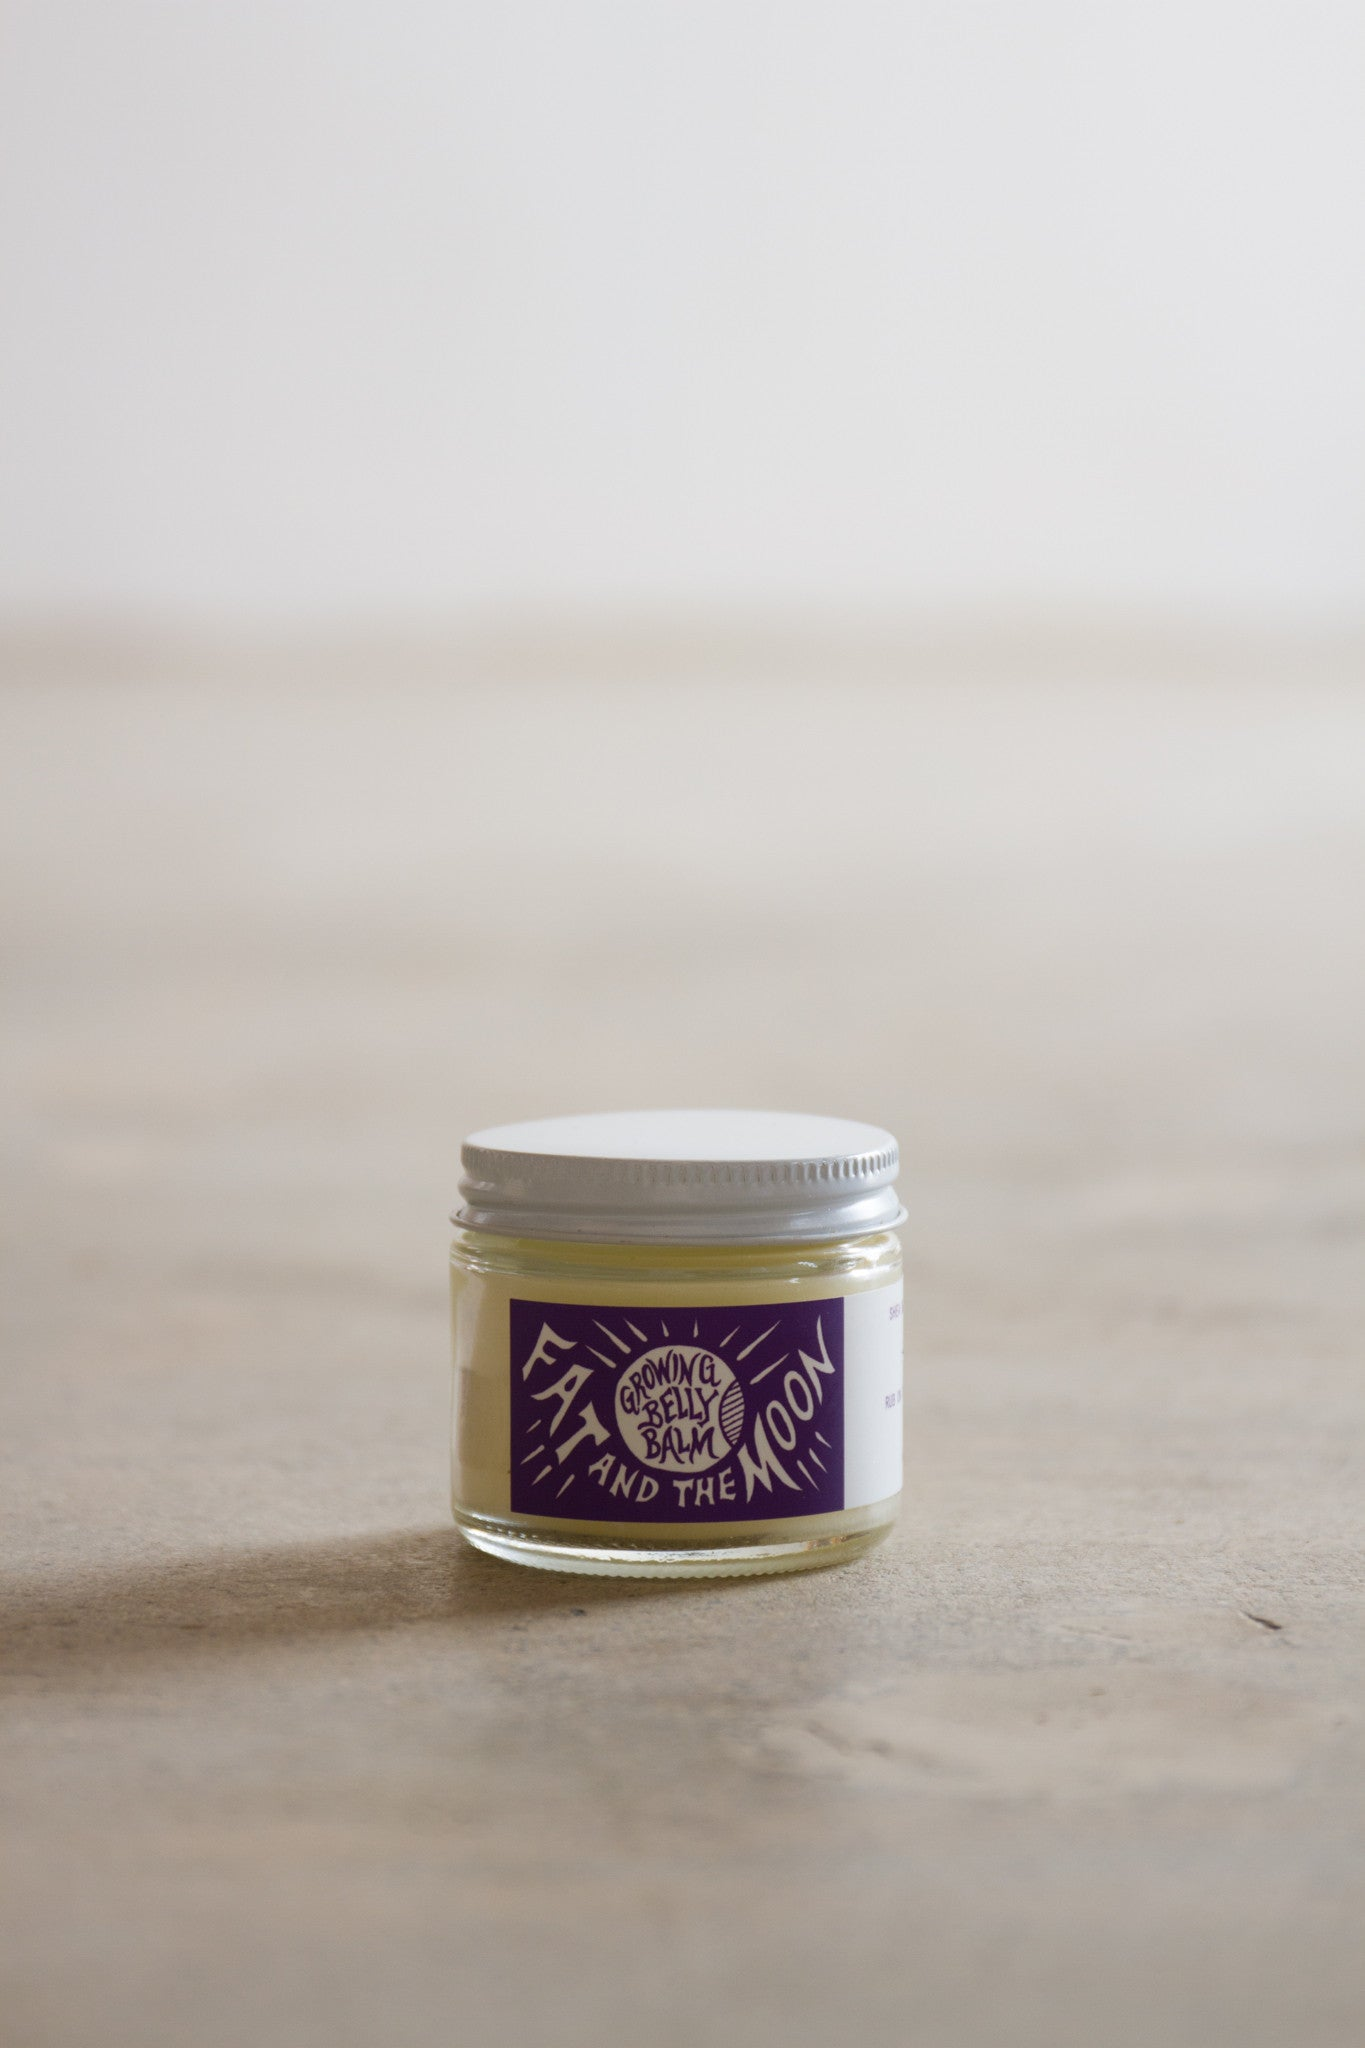 Fat & The Moon Growing Belly Balm